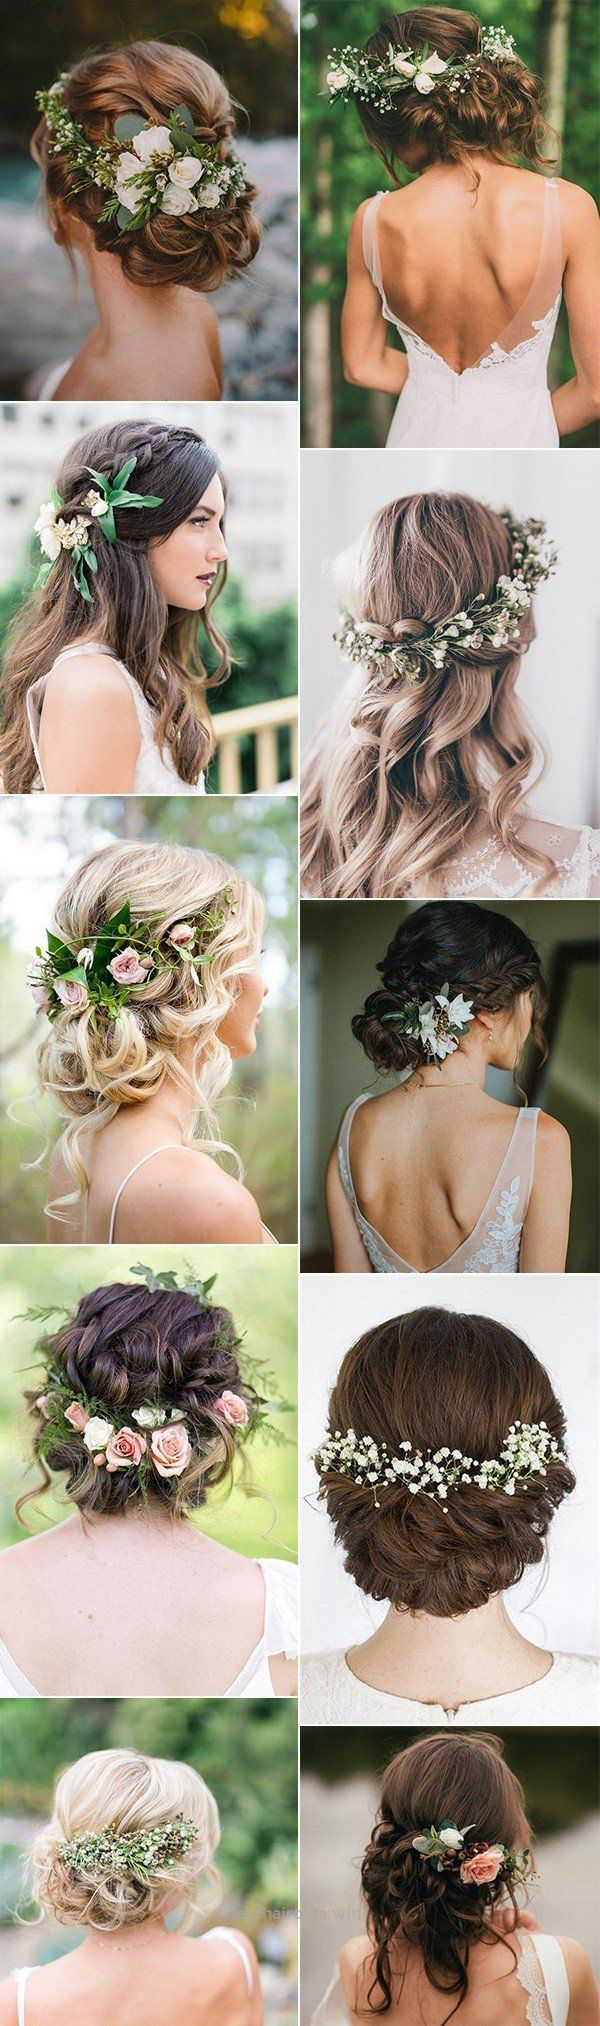 Outstanding Your wedding day is coming and you must think about your dress, bouquet and of course, hairstyle. I've got some posts about wedding hairstyles and this time I'd like to feature ..